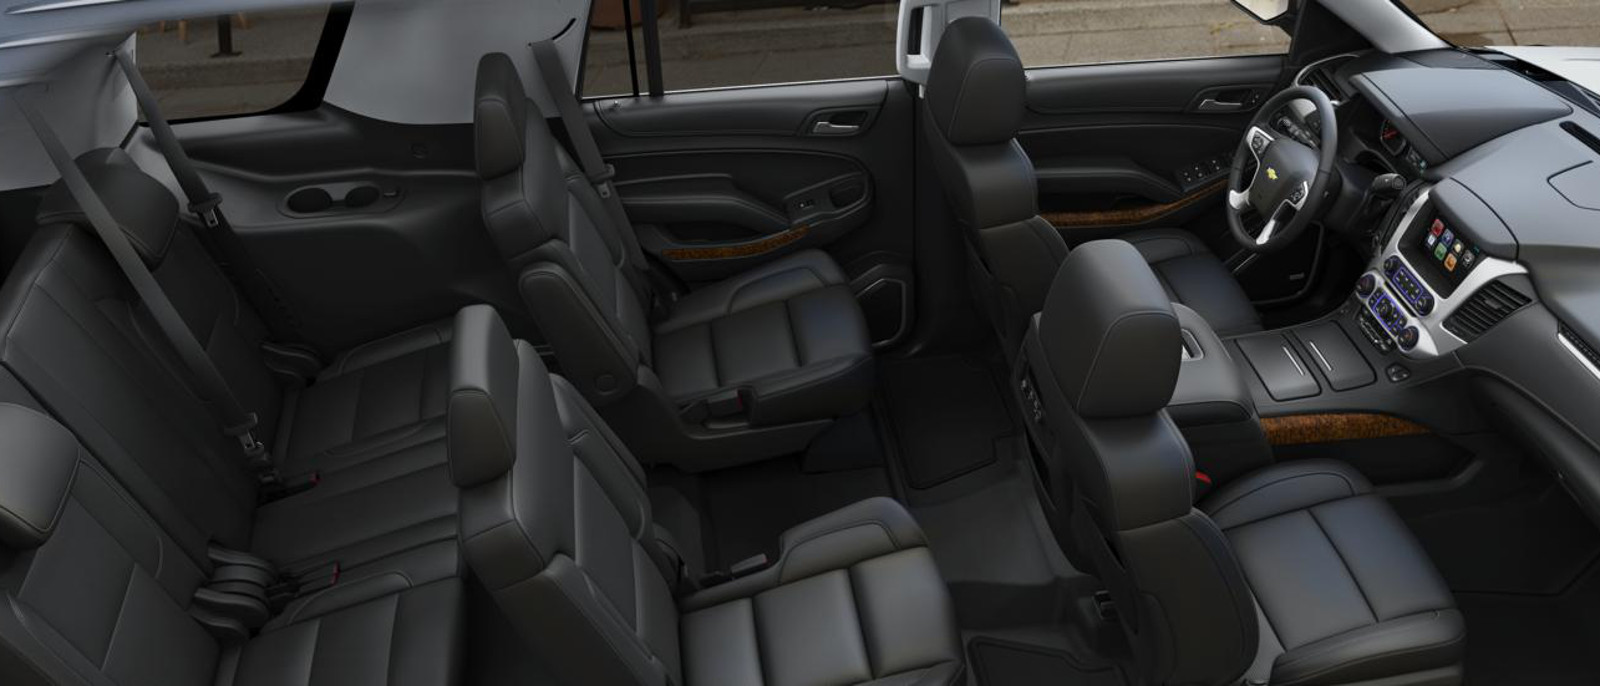 2016 Chevy Tahoe Available In Merrillville In Mike Anderson Chevy